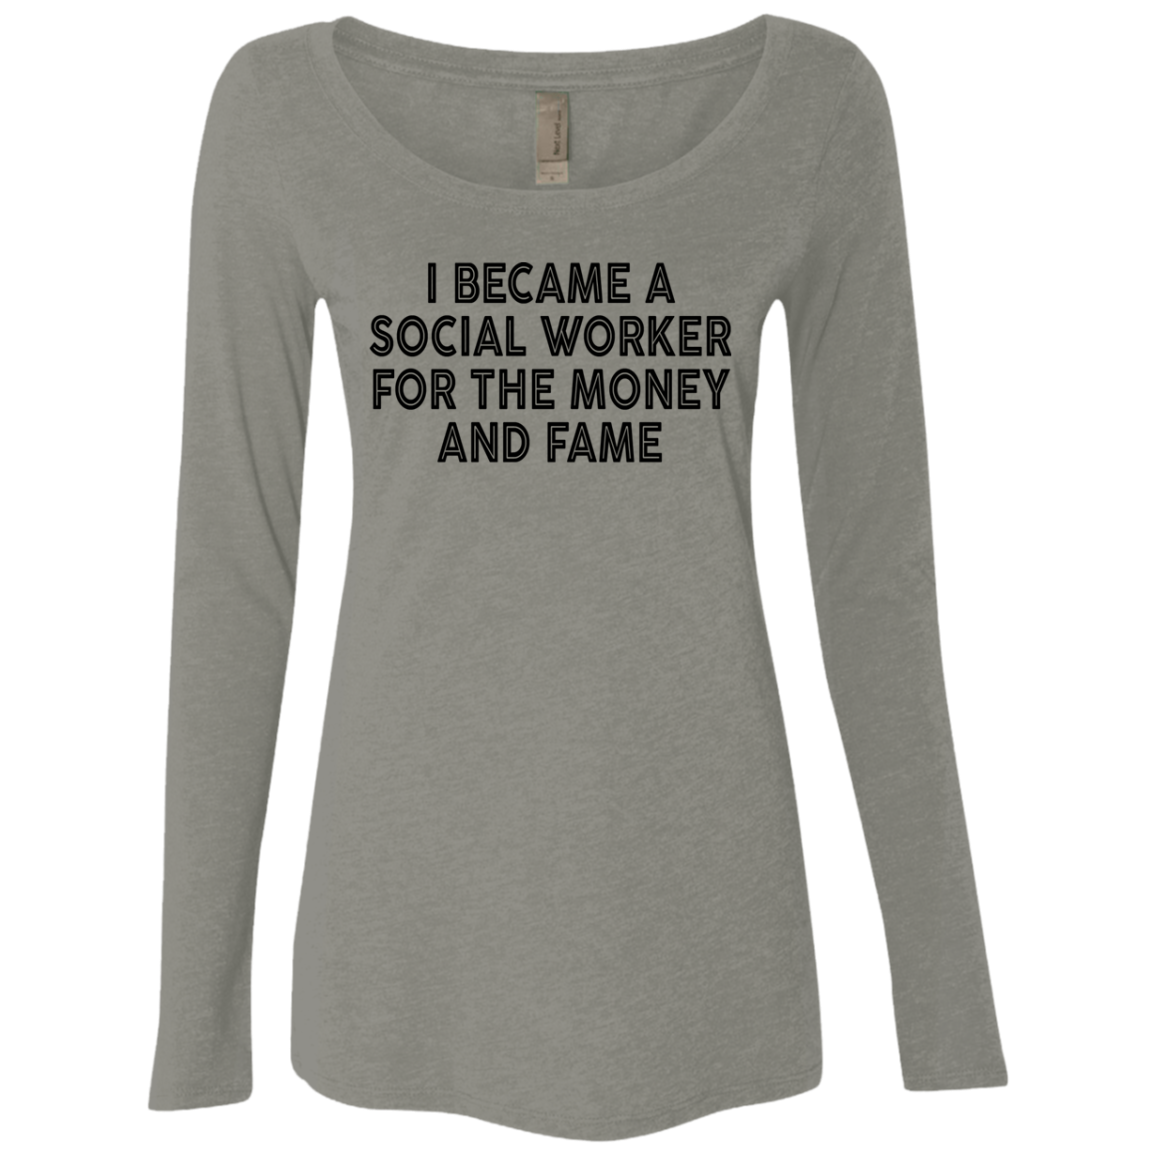 I Became A Social Worker For The Money And Fame Women's Long Sleeve Tee